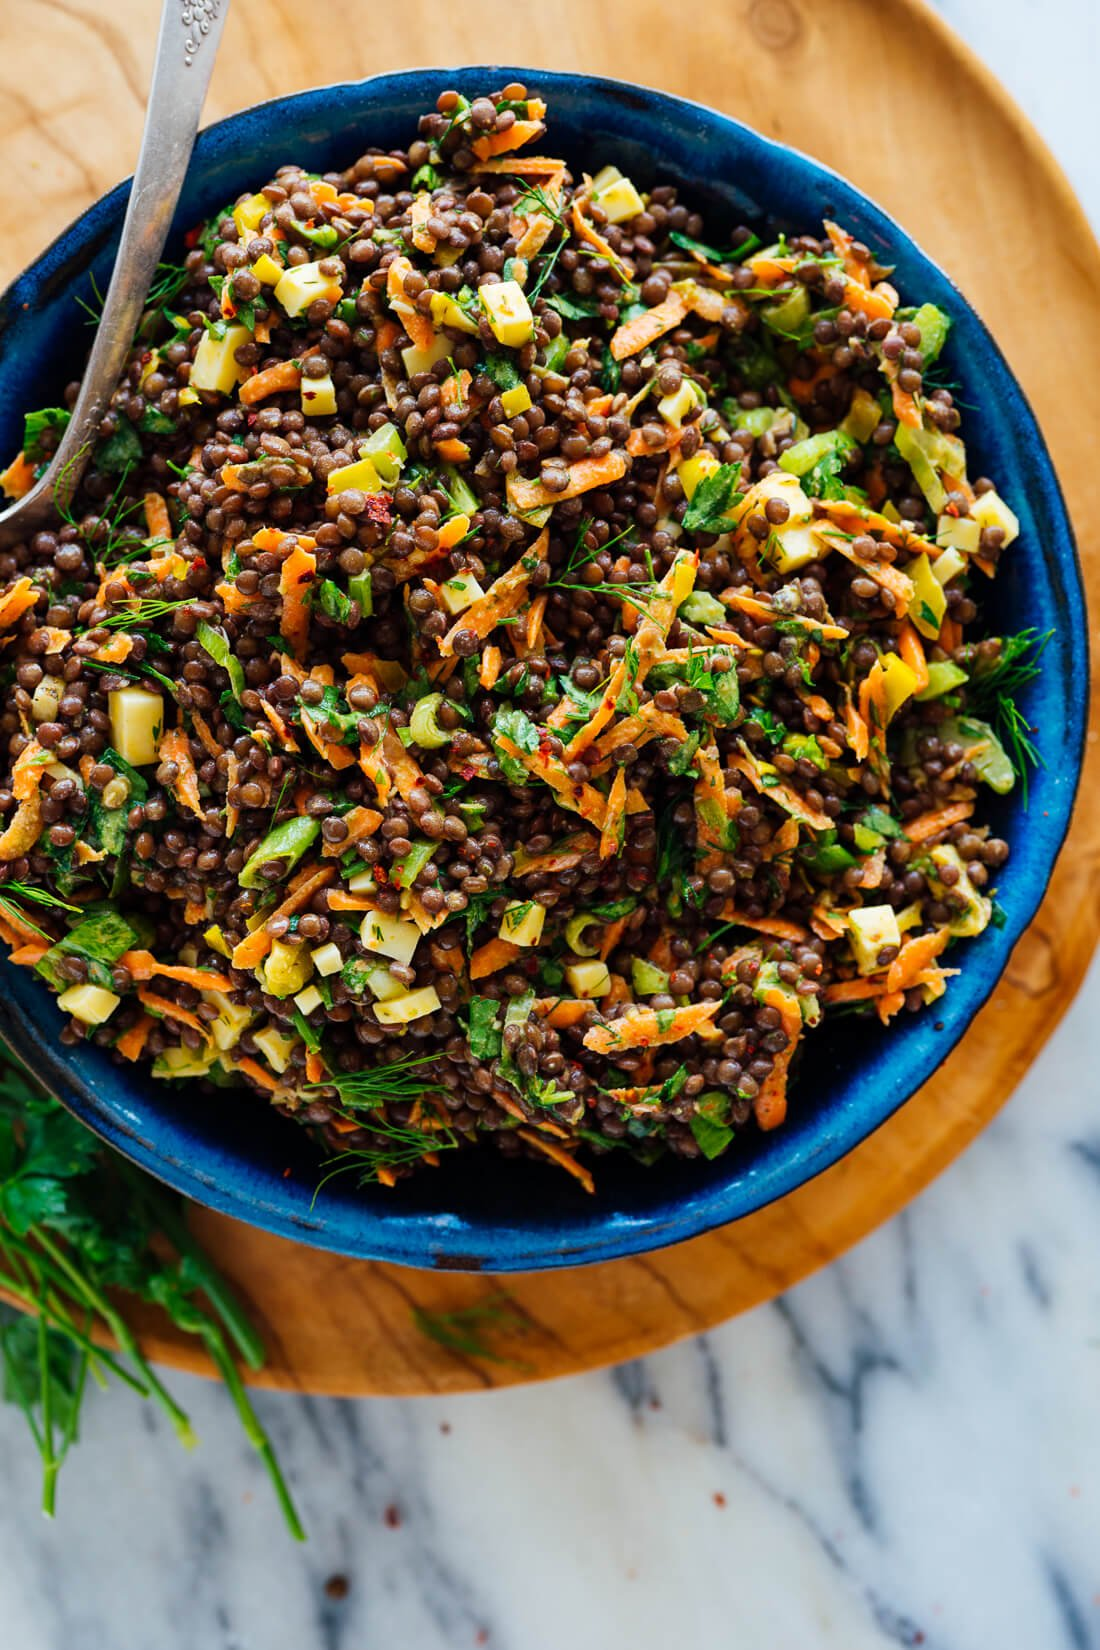 Tangy Lentil Salad With Dill Pepperoncini Cookie And Kate